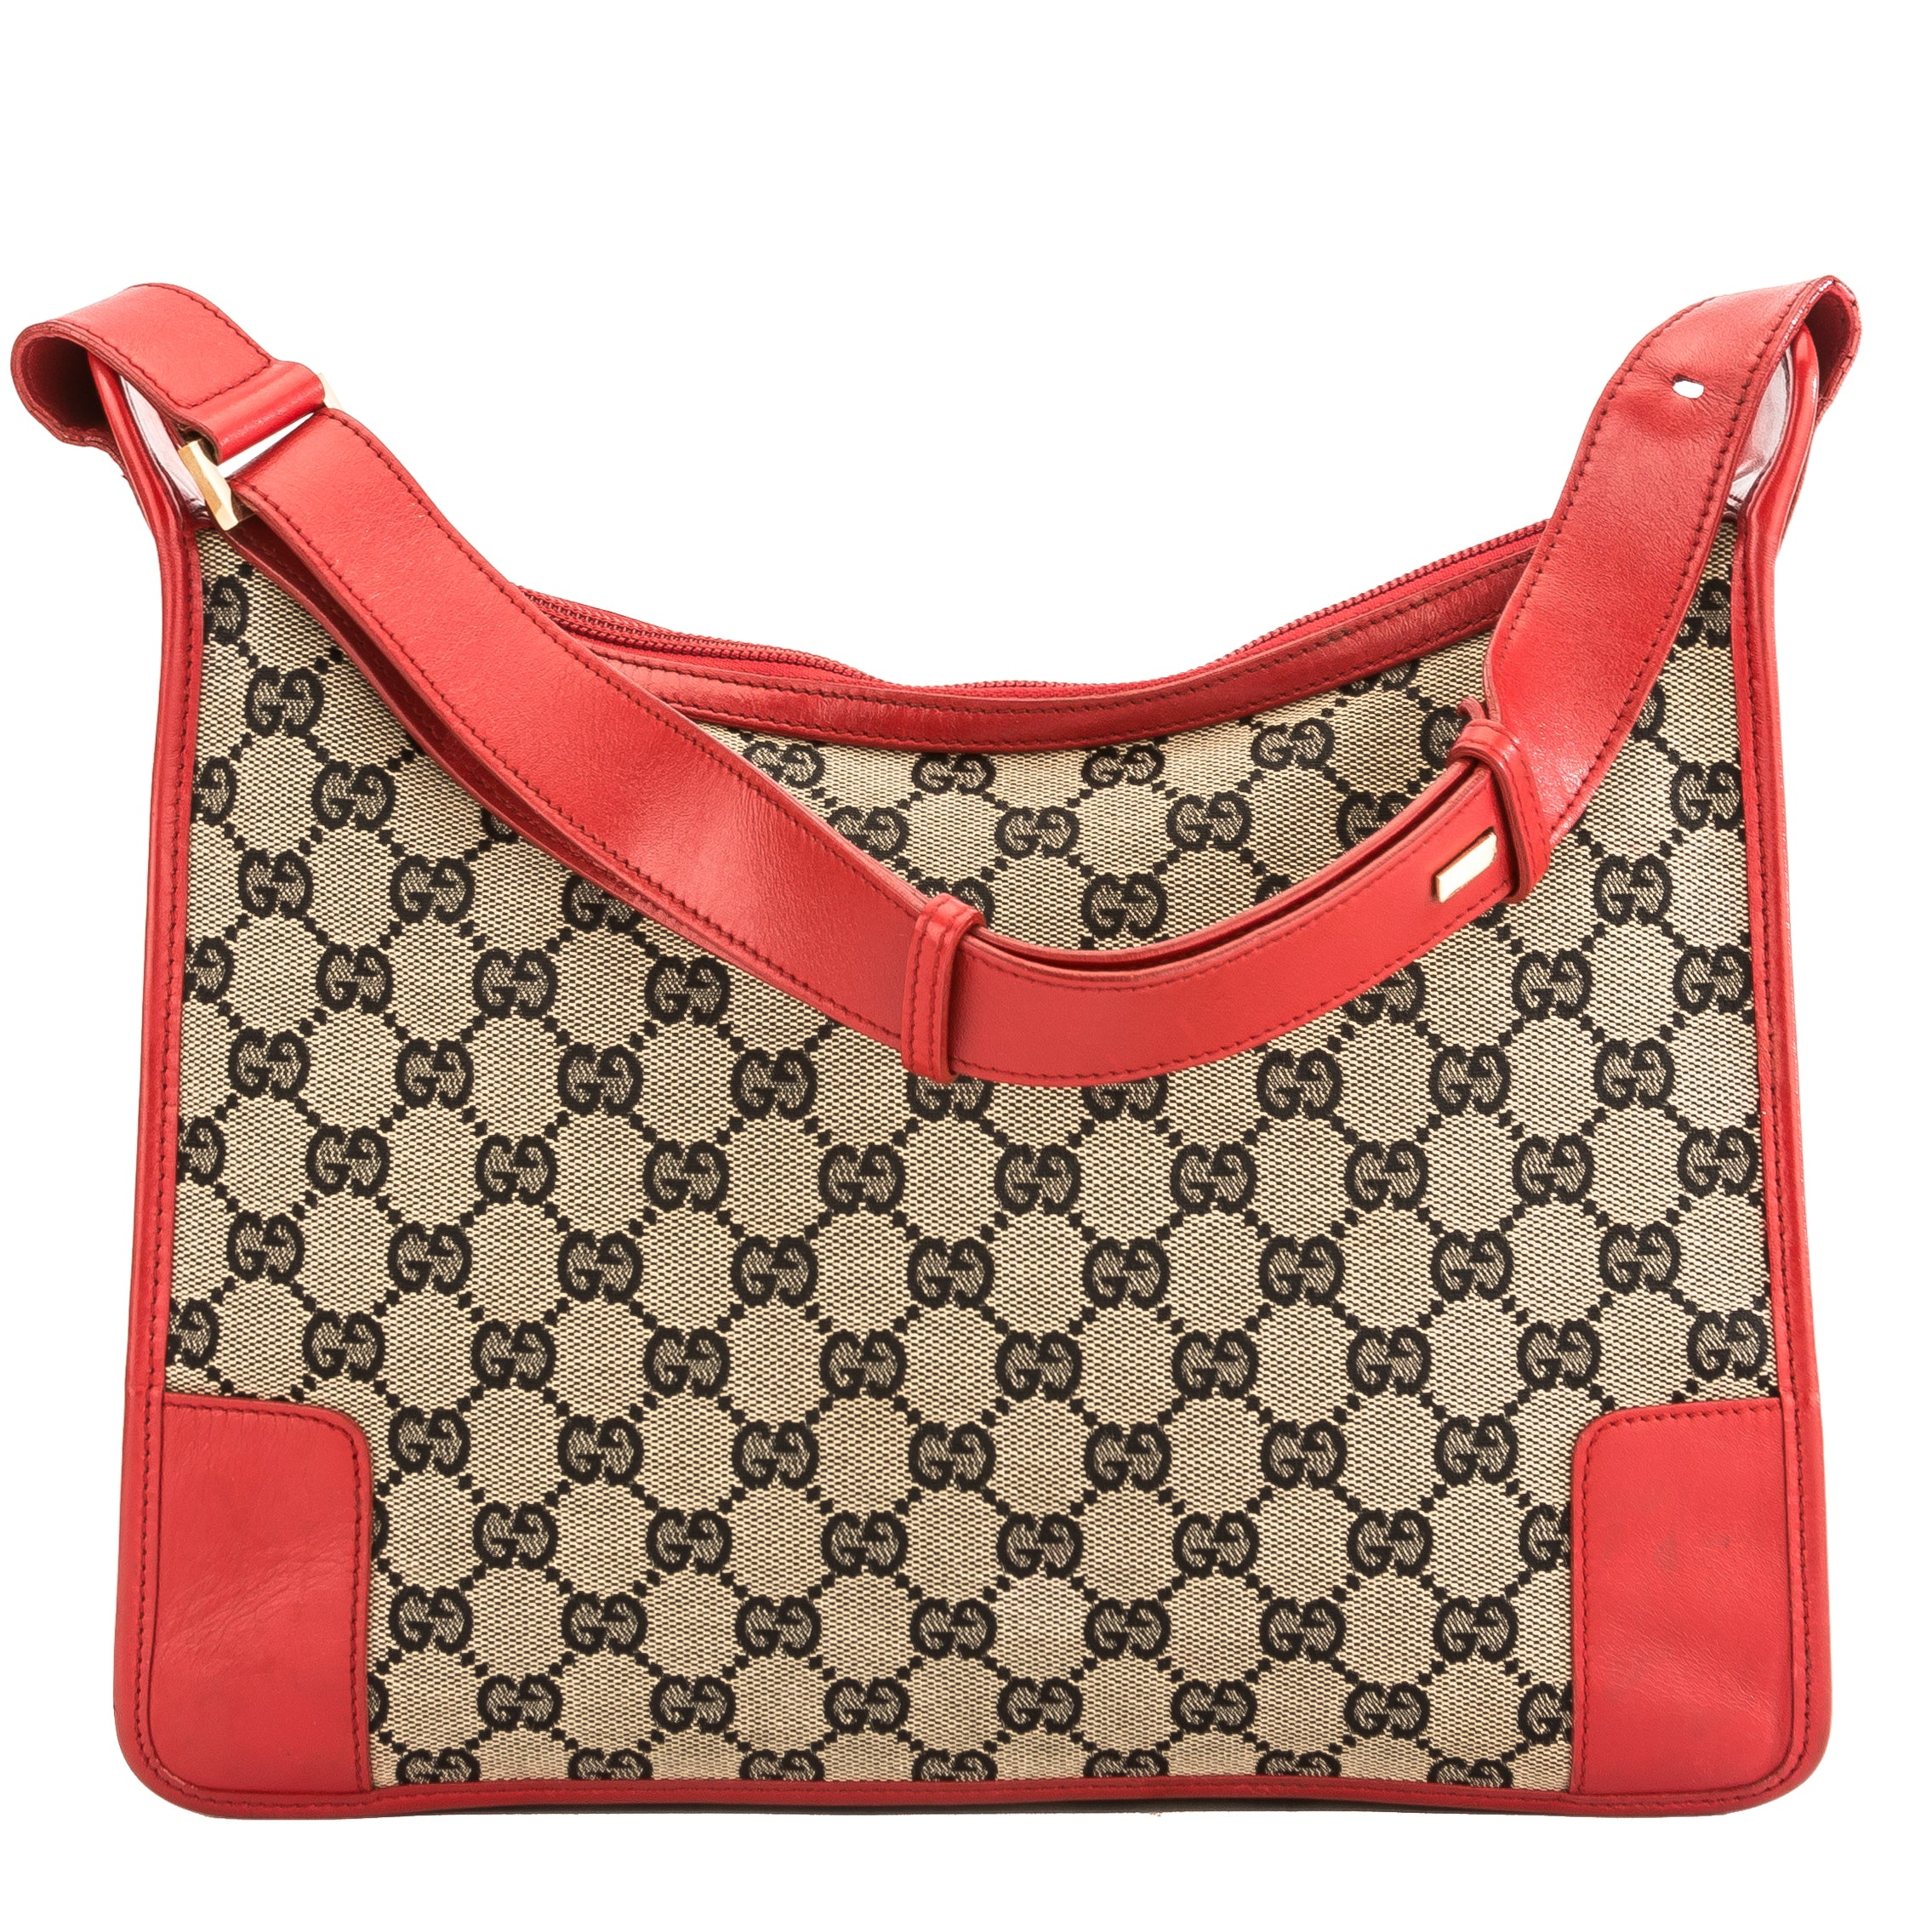 a856efb7067a Gucci Red Leather GG Canvas Shoulder Bag (Pre Owned) - 3843010 | LuxeDH